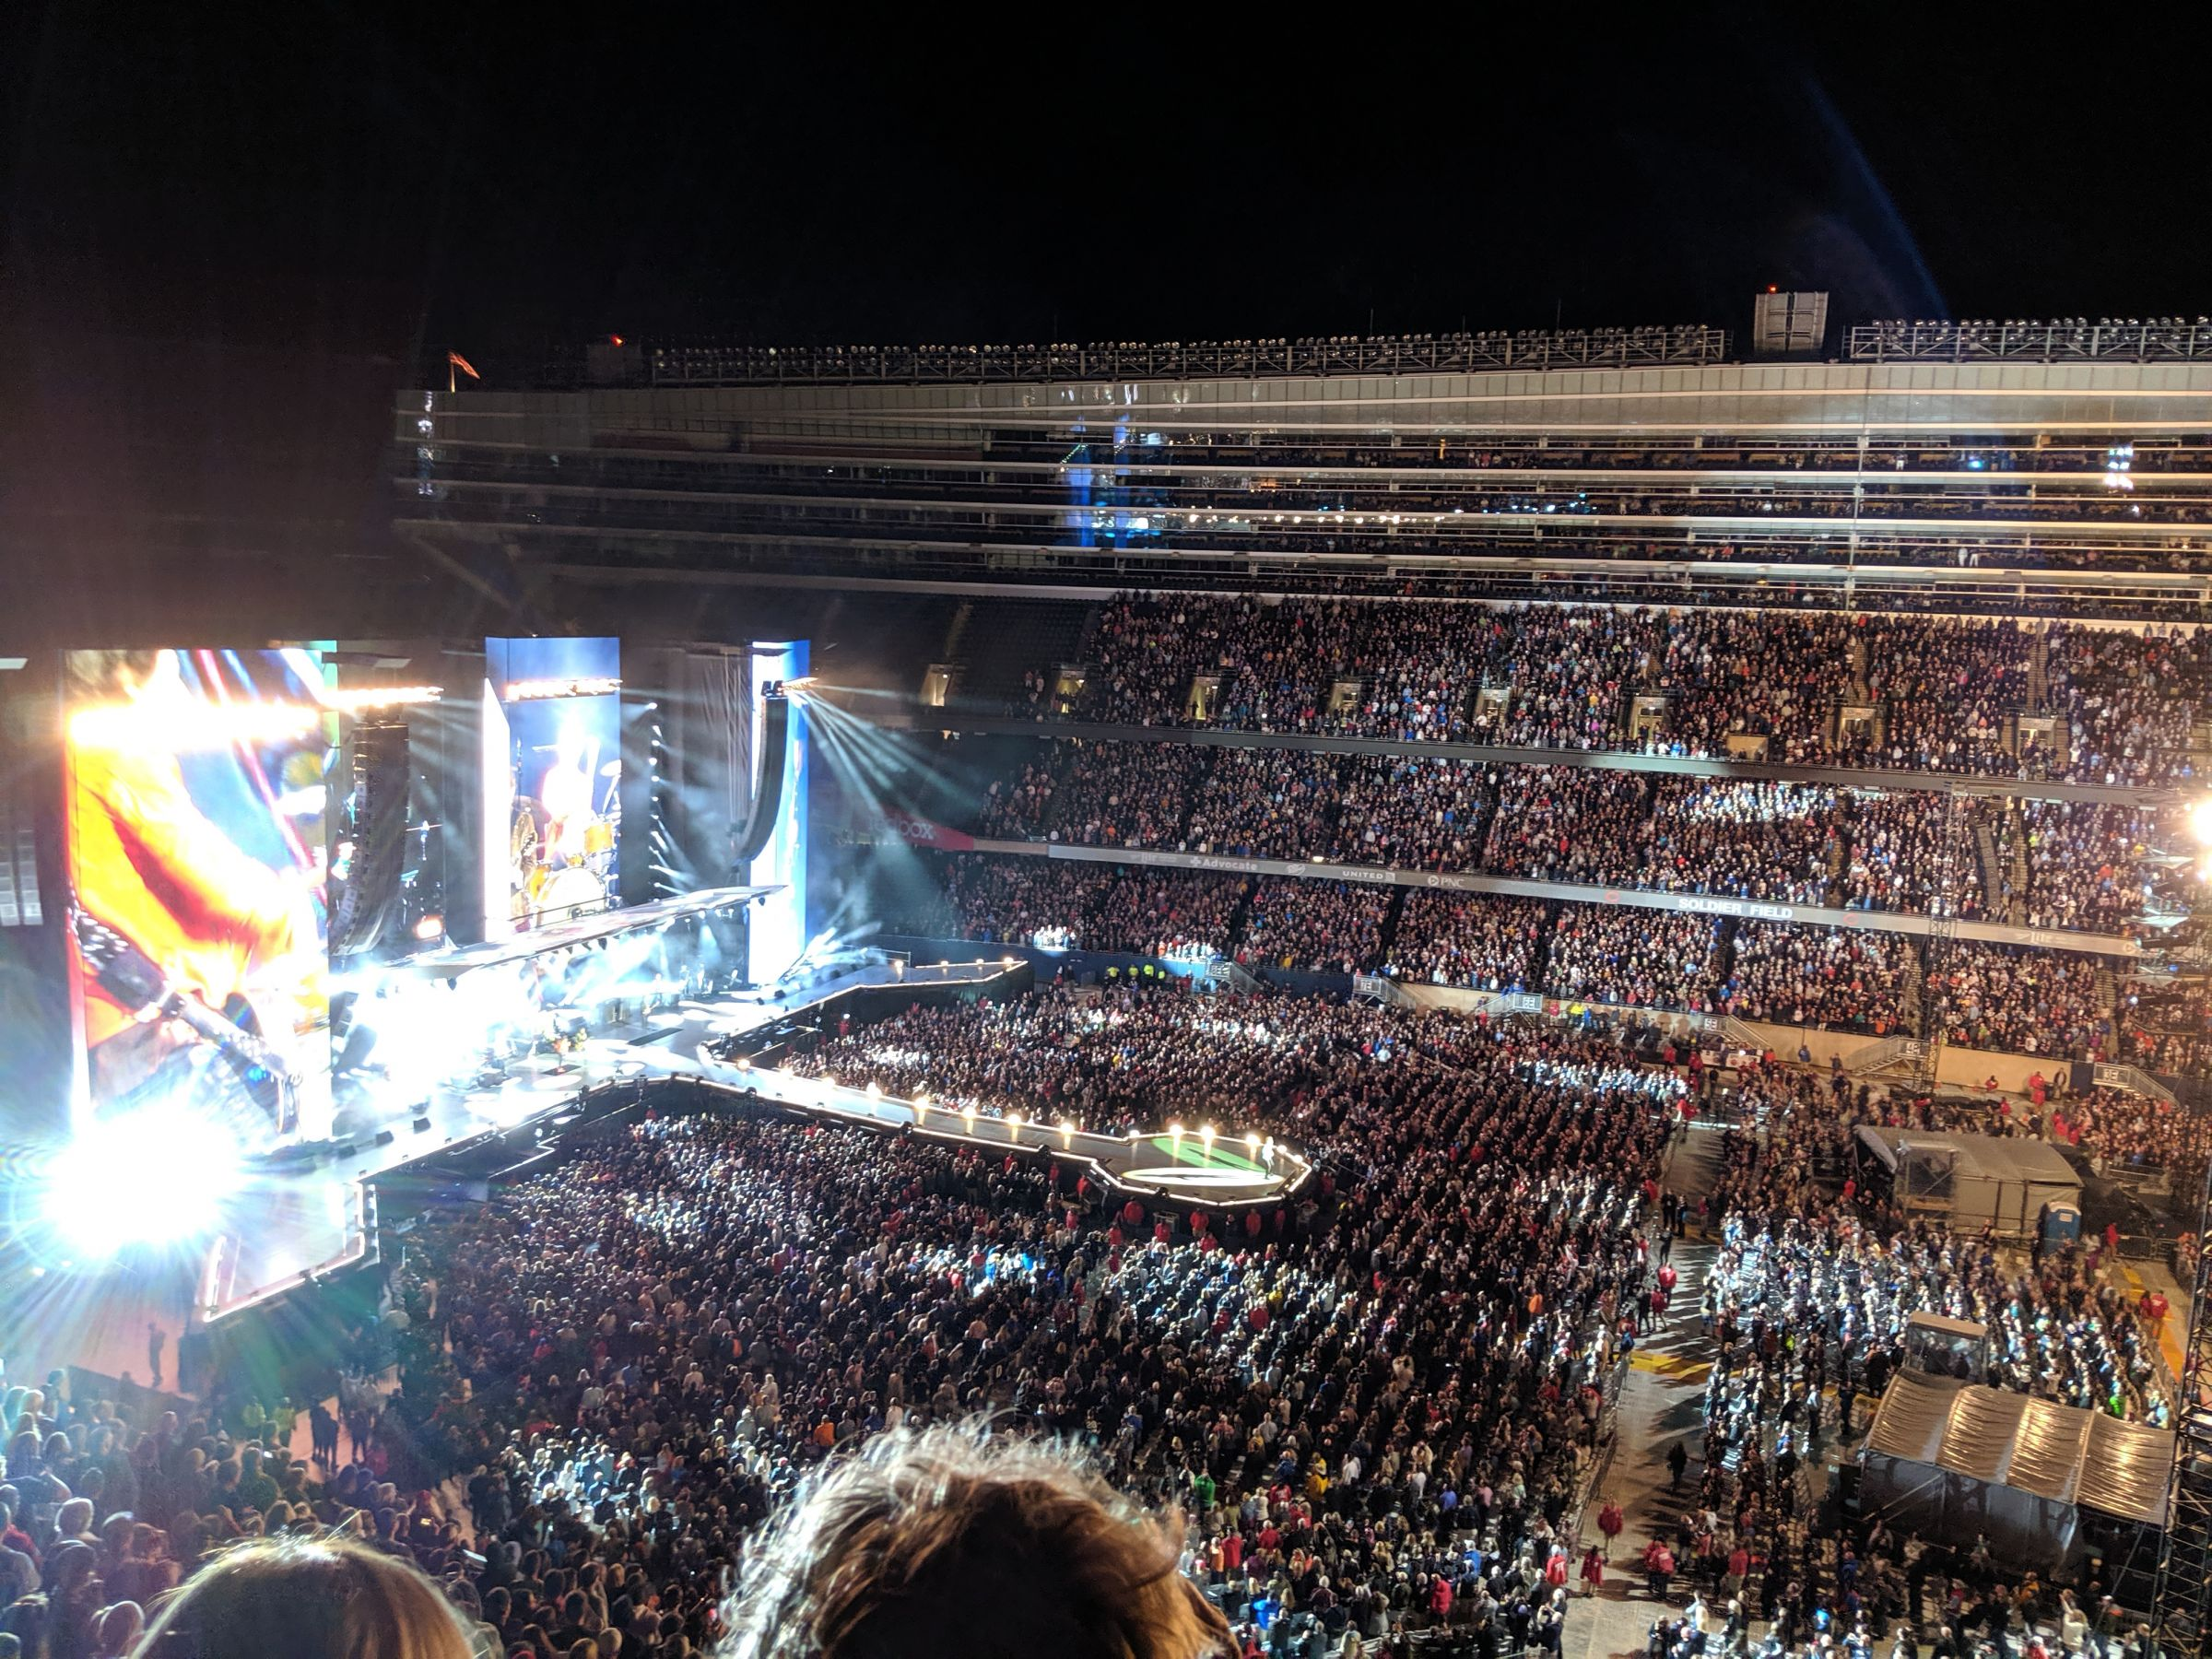 Concert Seat View for Soldier Field Section 437, Row 3, Seat 17